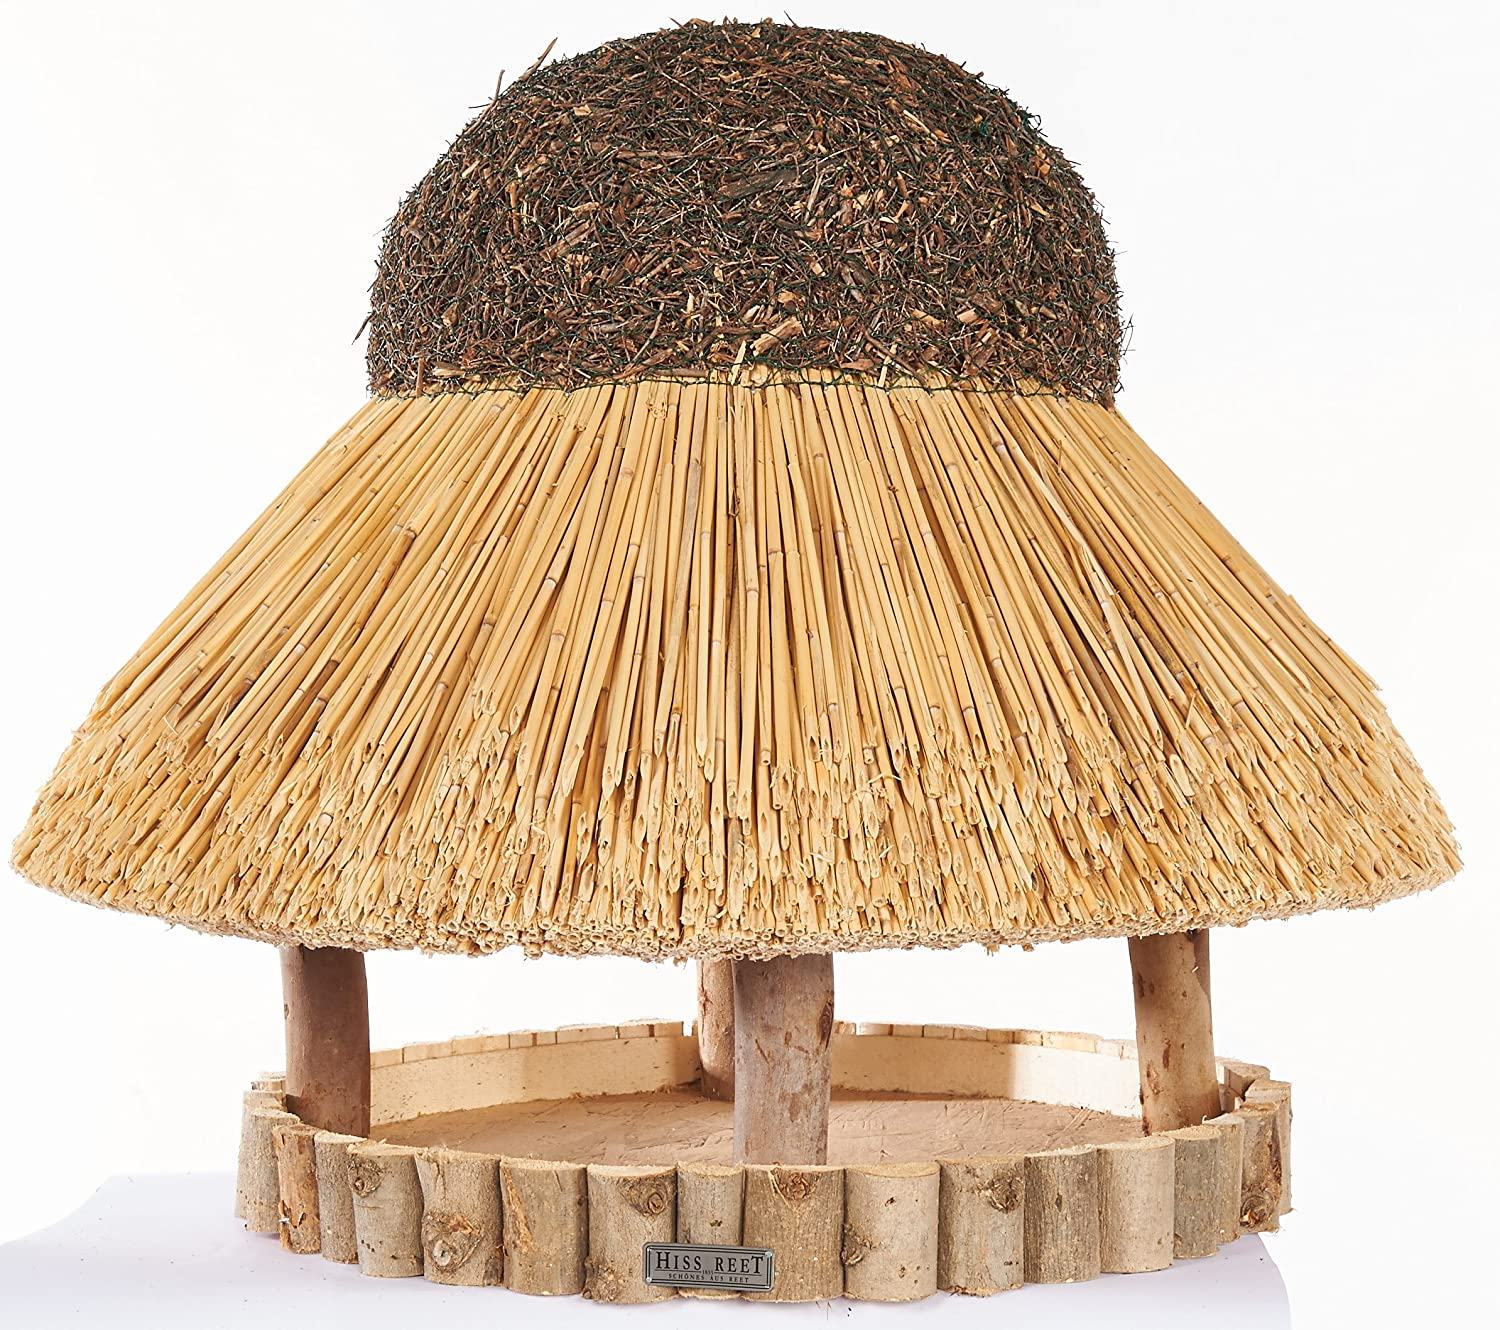 Hiss Reet Bird House with Traditional Reed Roof, 74 cm-